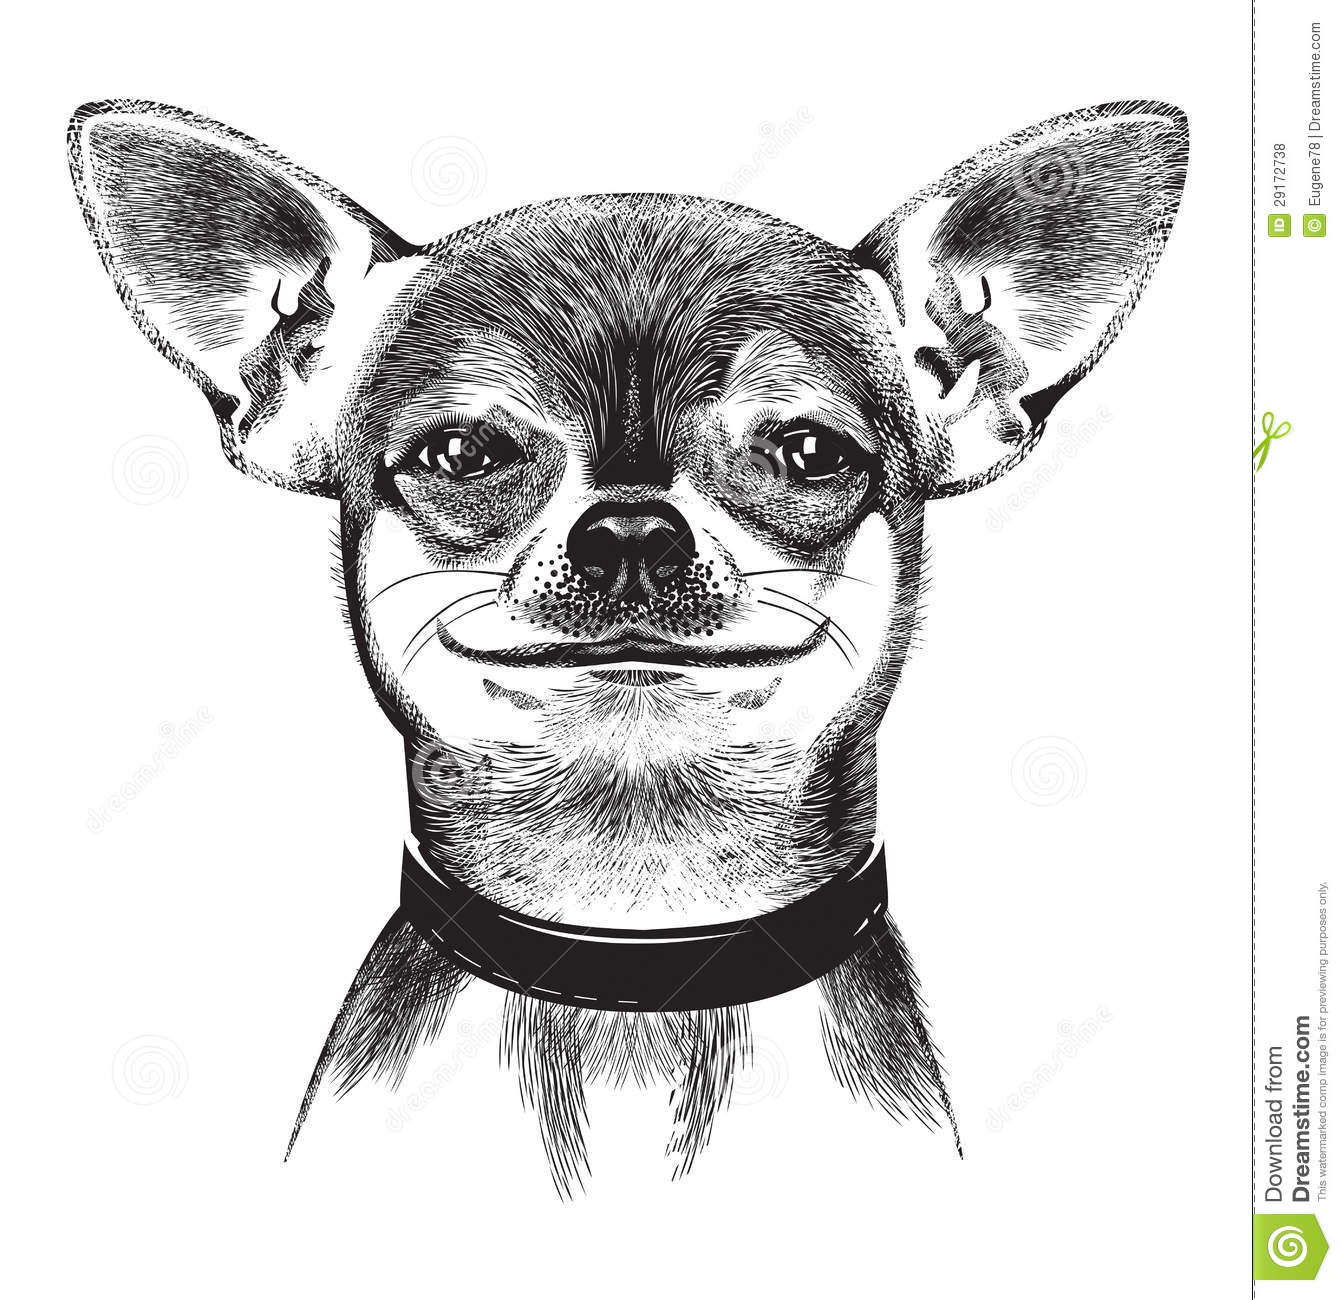 Dog Chihuahua Illustration Stock Vector Illustration Of Doggy Creature 29172738